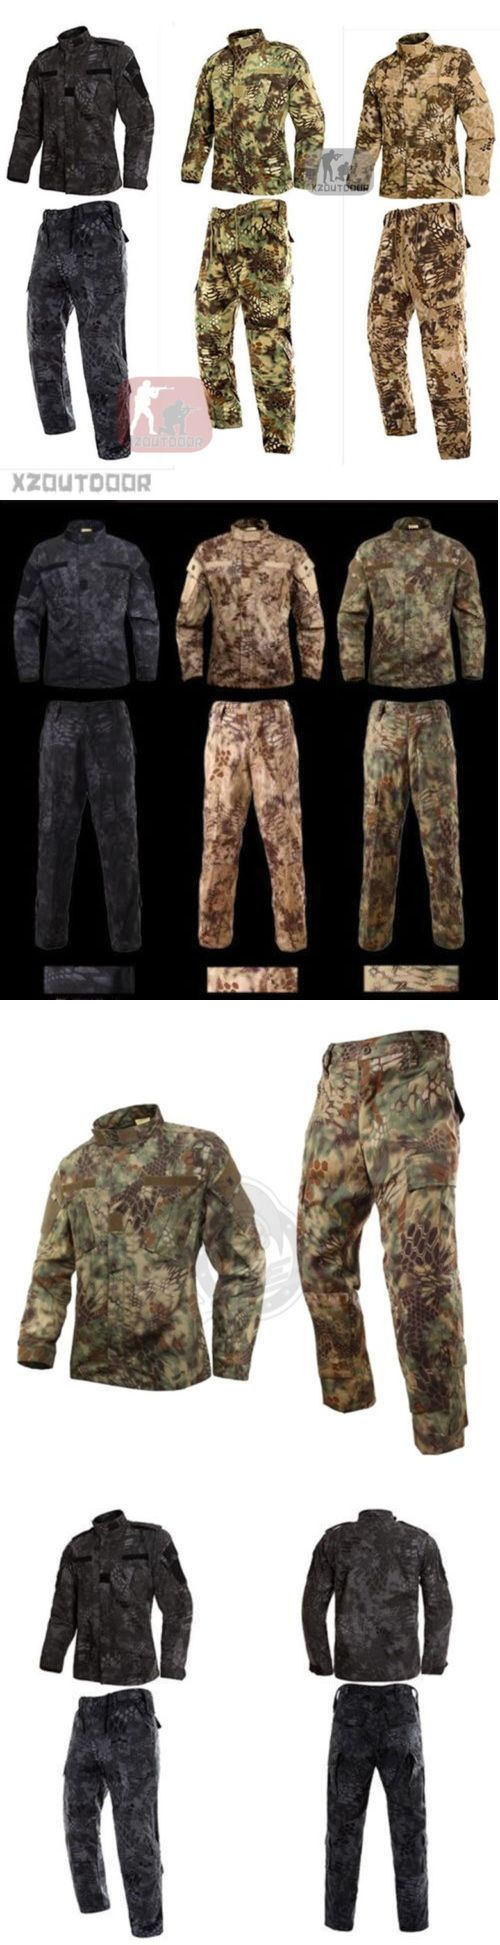 Other Hunting Clothing and Accs 159036: Mandrake Military Bdu Tactical Uniform Shirt Pants Kryptek Hunting Airsoft* -> BUY IT NOW ONLY: $31.99 on eBay!